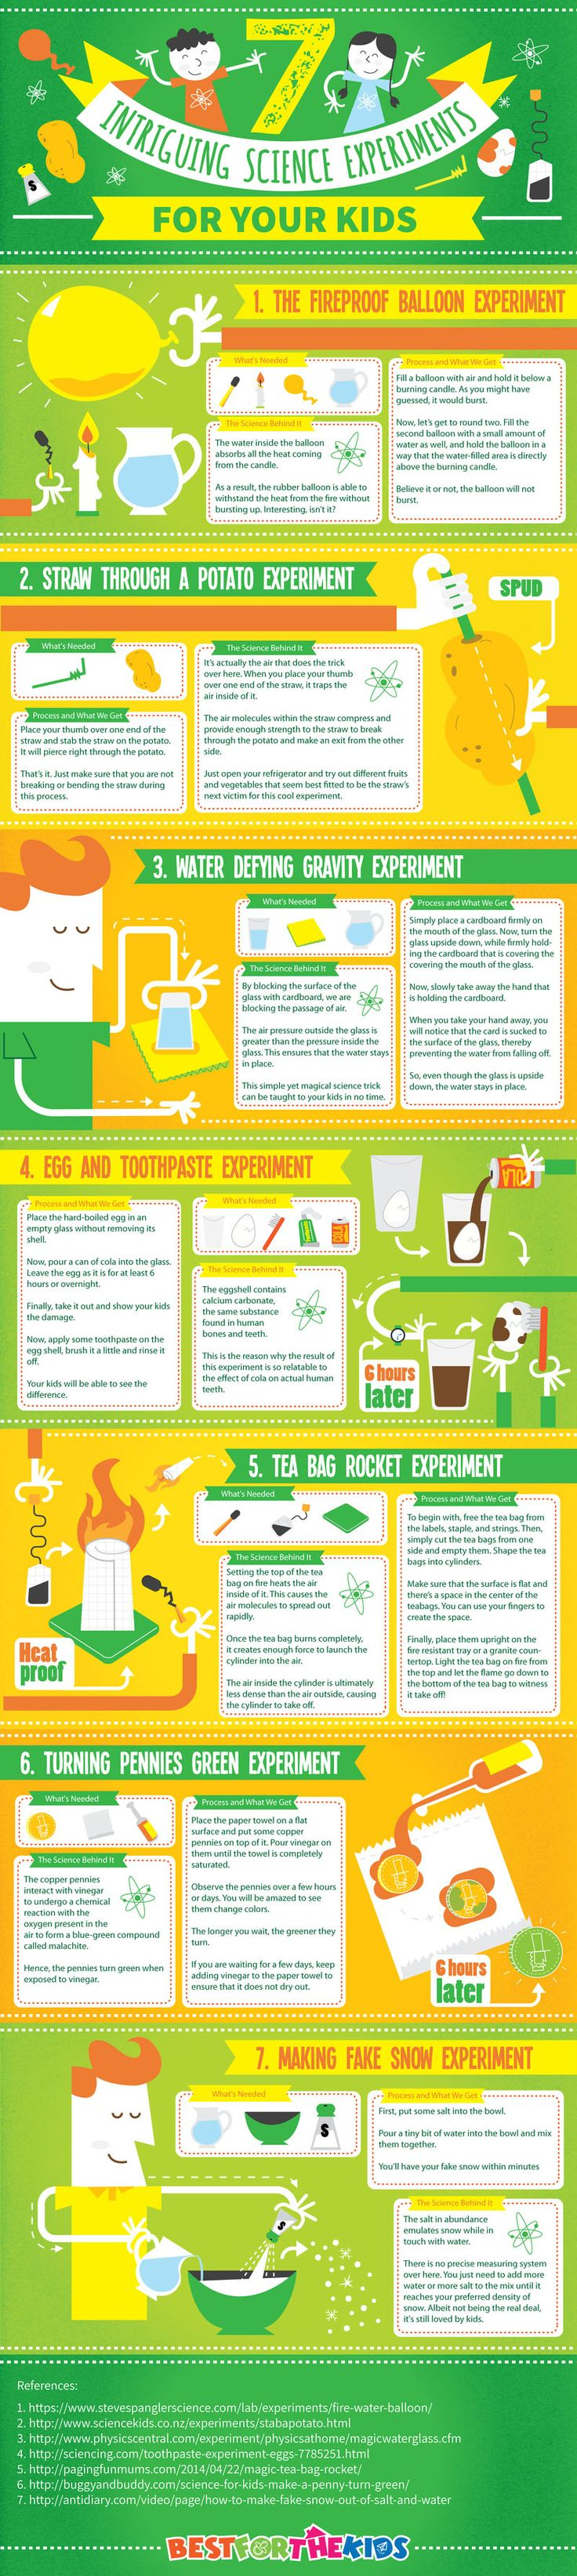 7 Intriguing Science Experiments for Your Kids